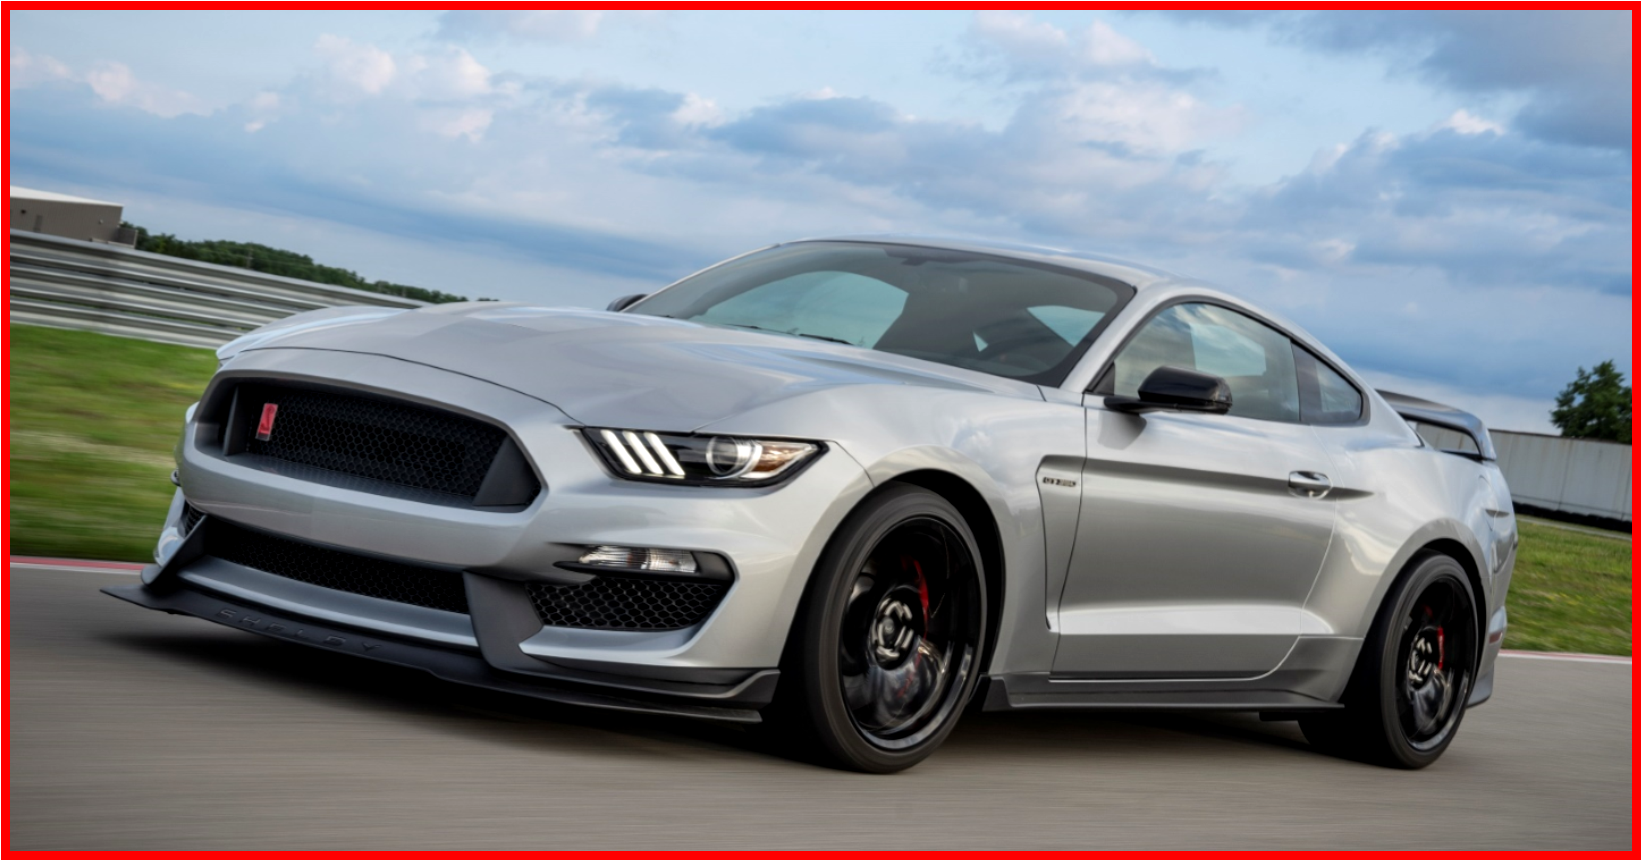 AutoInformed.com on 2020 Shelby GT350